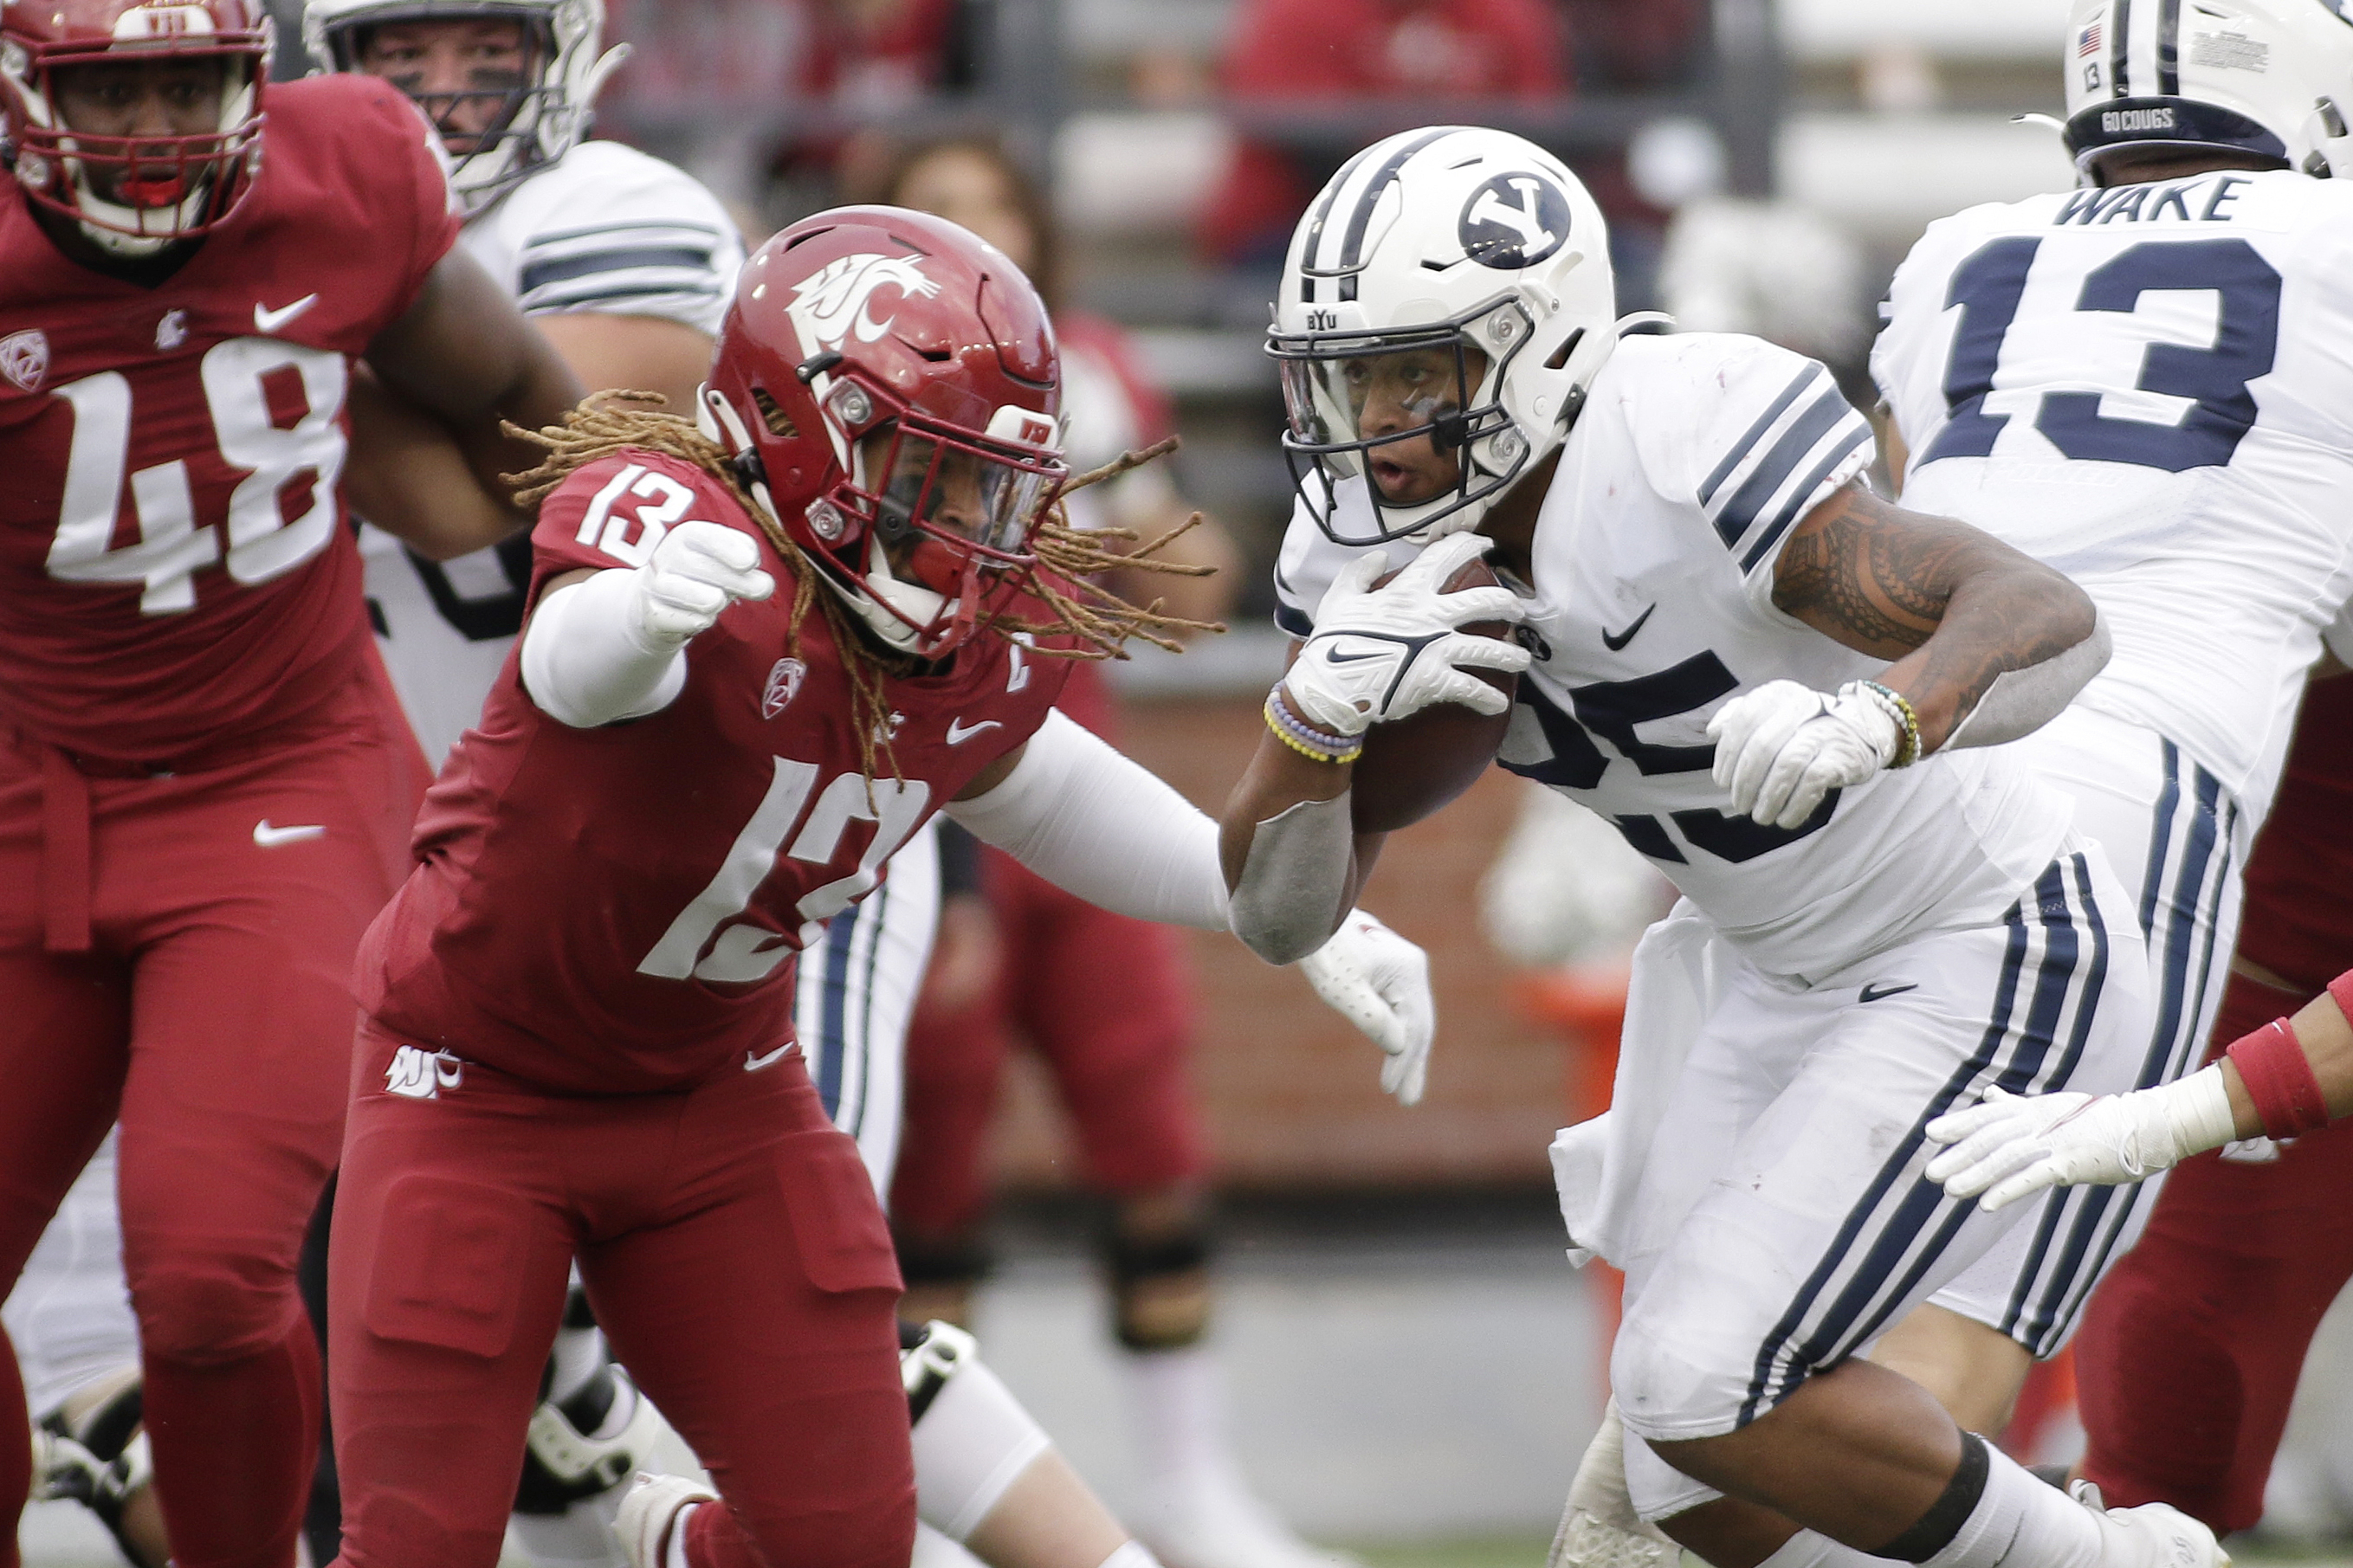 BYU running back Tyler Allgeier, right, carries the ball while pressured by Washington State linebacker Jahad Woods.